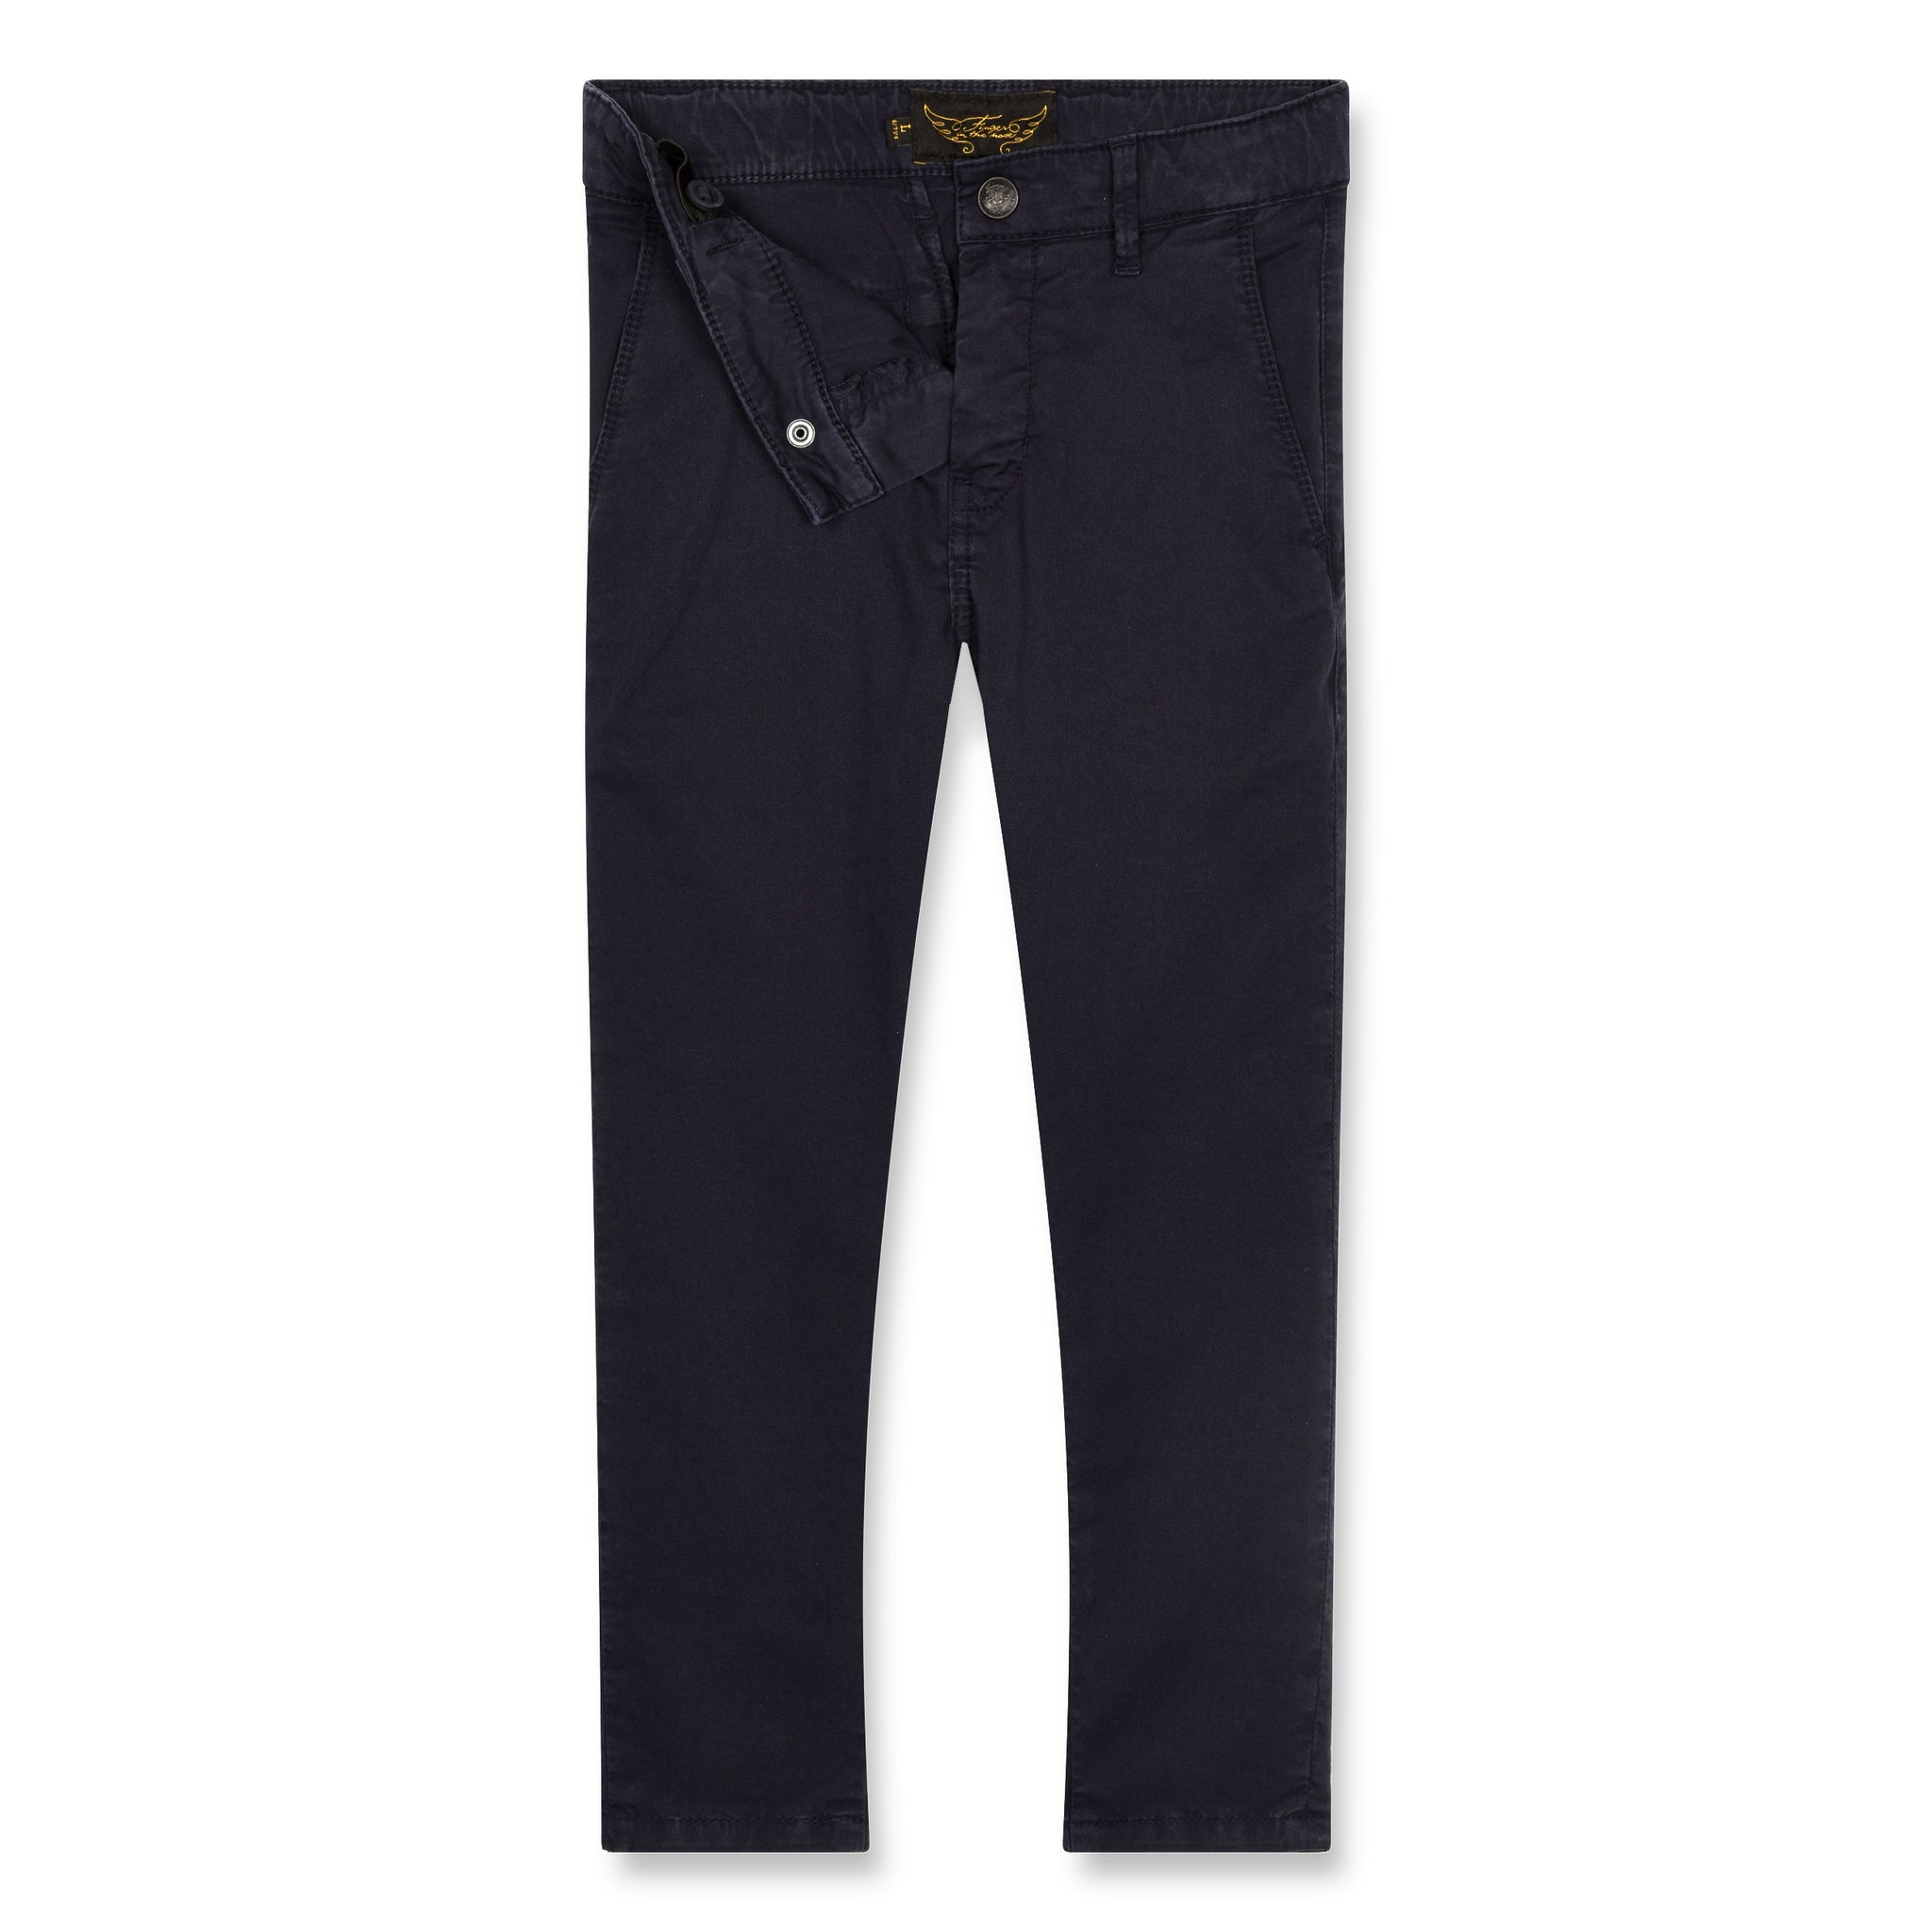 NEW SCOTTY Super Navy -  Chino Fit Pant